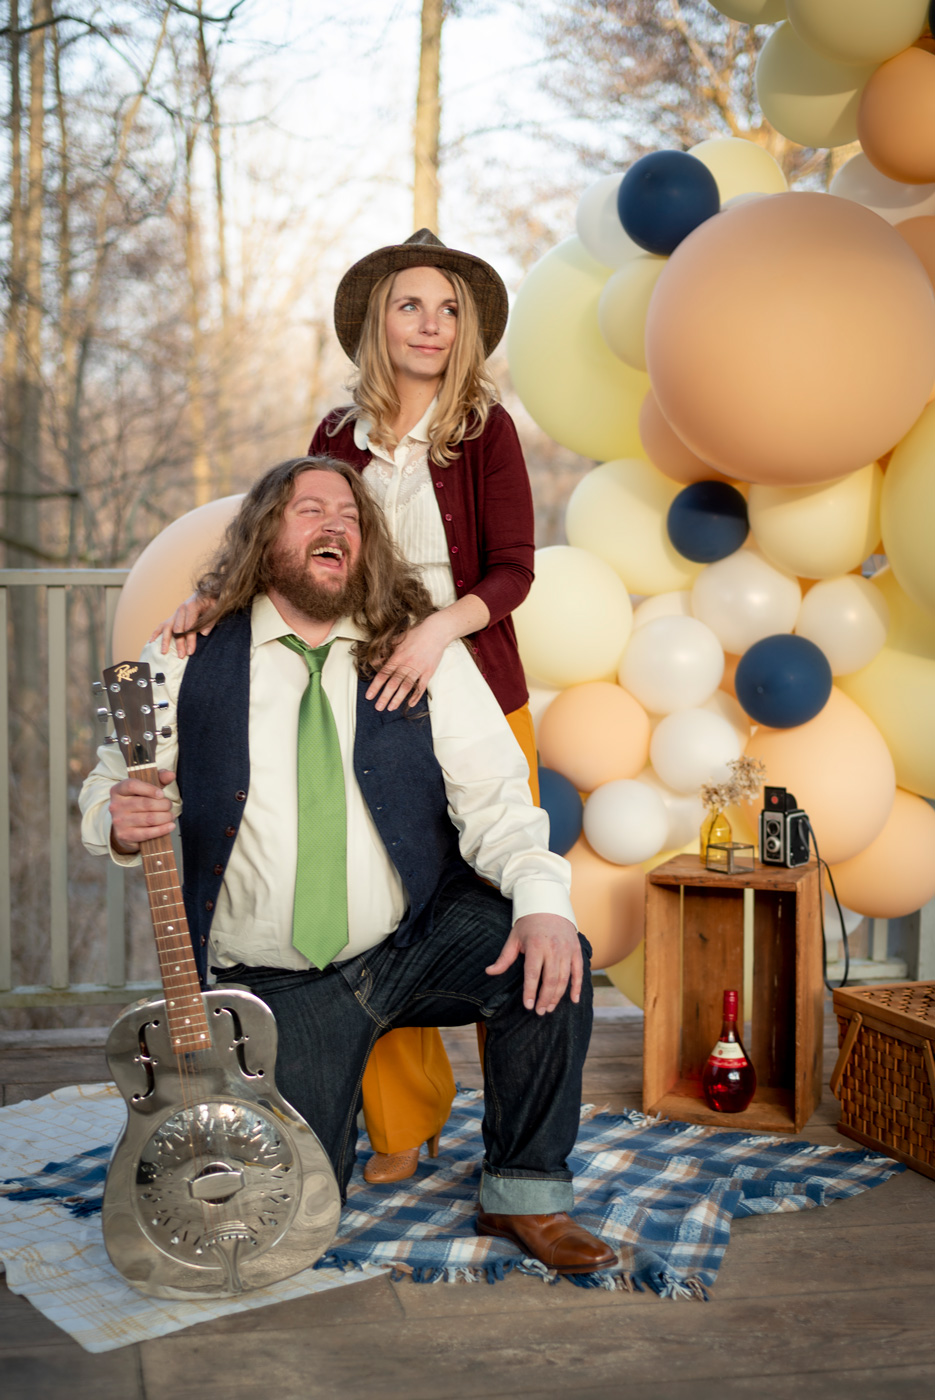 Styled Couples Adventure Session by BlueVerve Studio Vintage Balloons